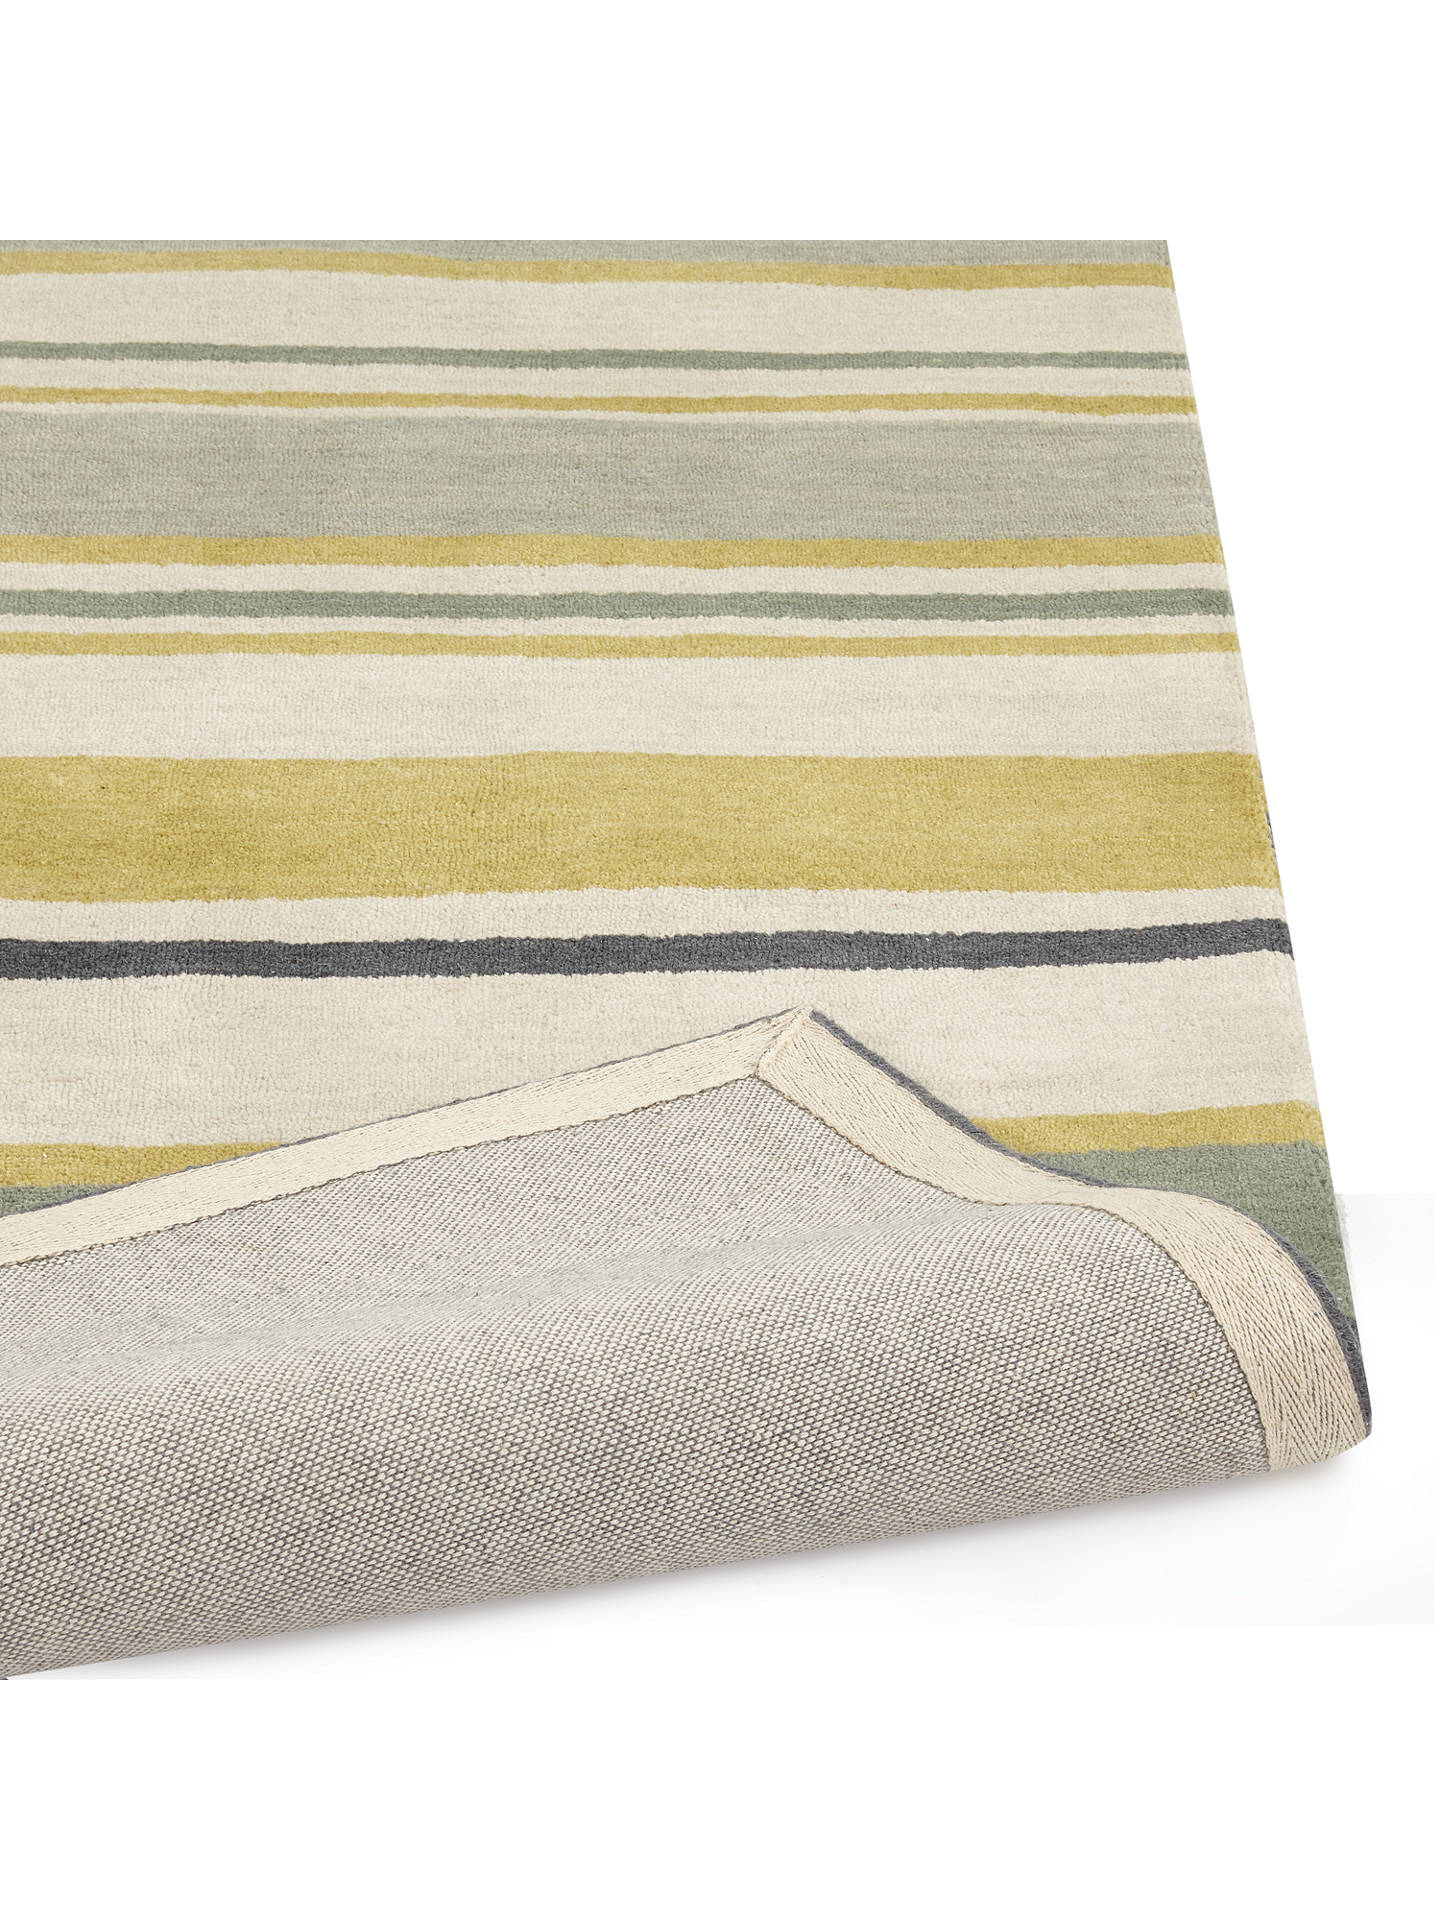 BuyJohn Lewis & Partners Country Chateaux Stripe Rug, Multi, L180 x W120cm Online at johnlewis.com